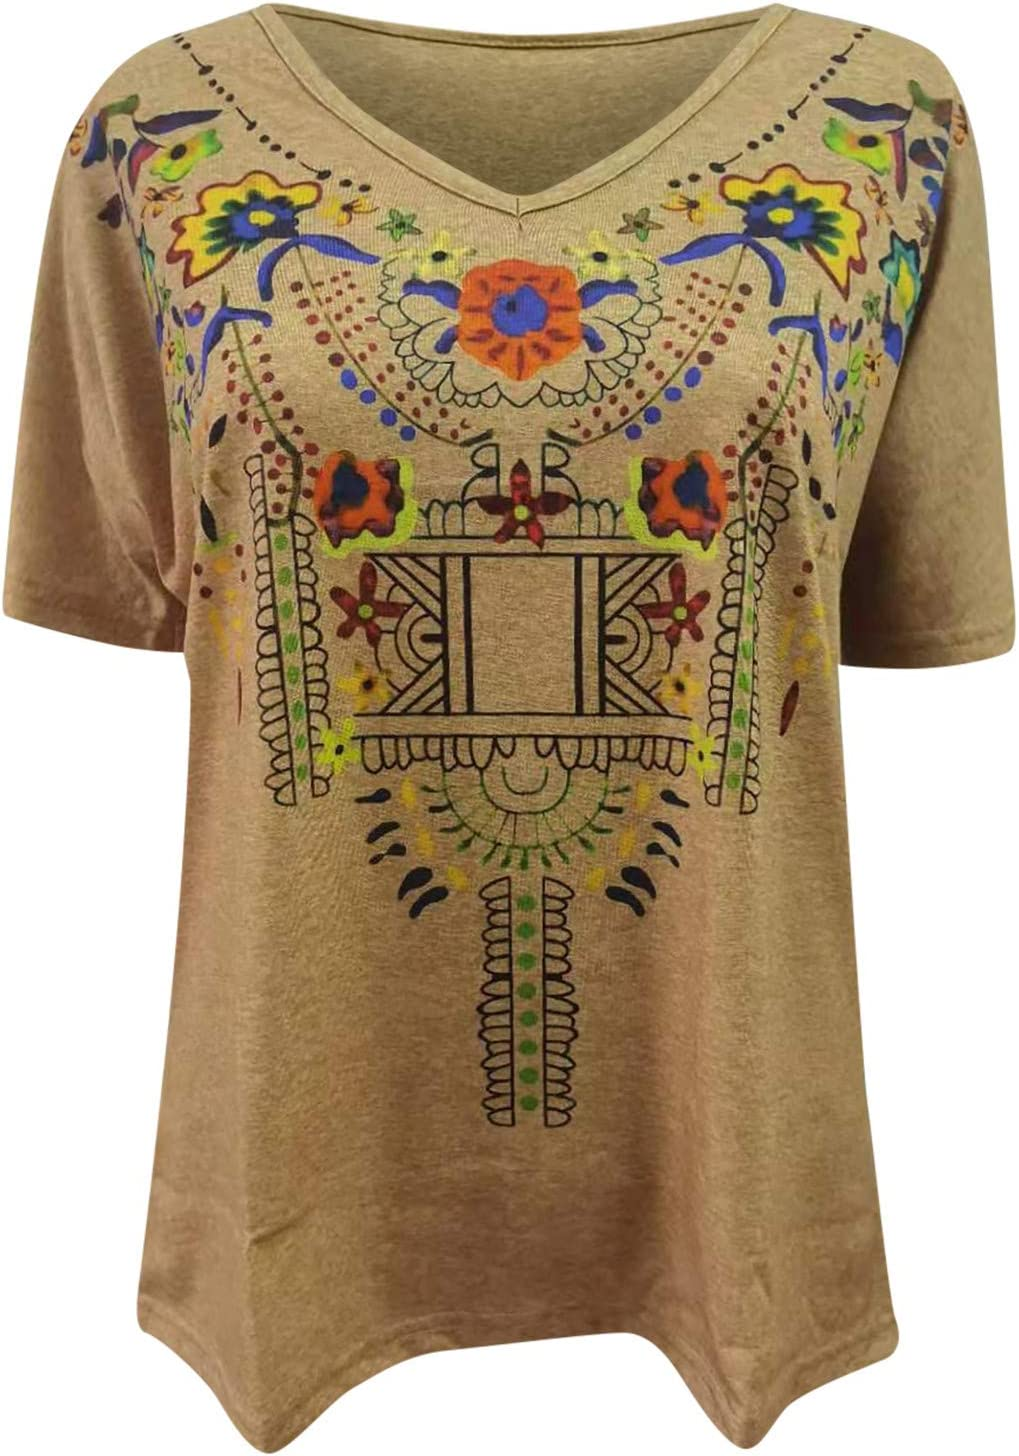 Women Blouses Beauty products and Tops Fashion for Casual Printed Work St Direct store Ethnic